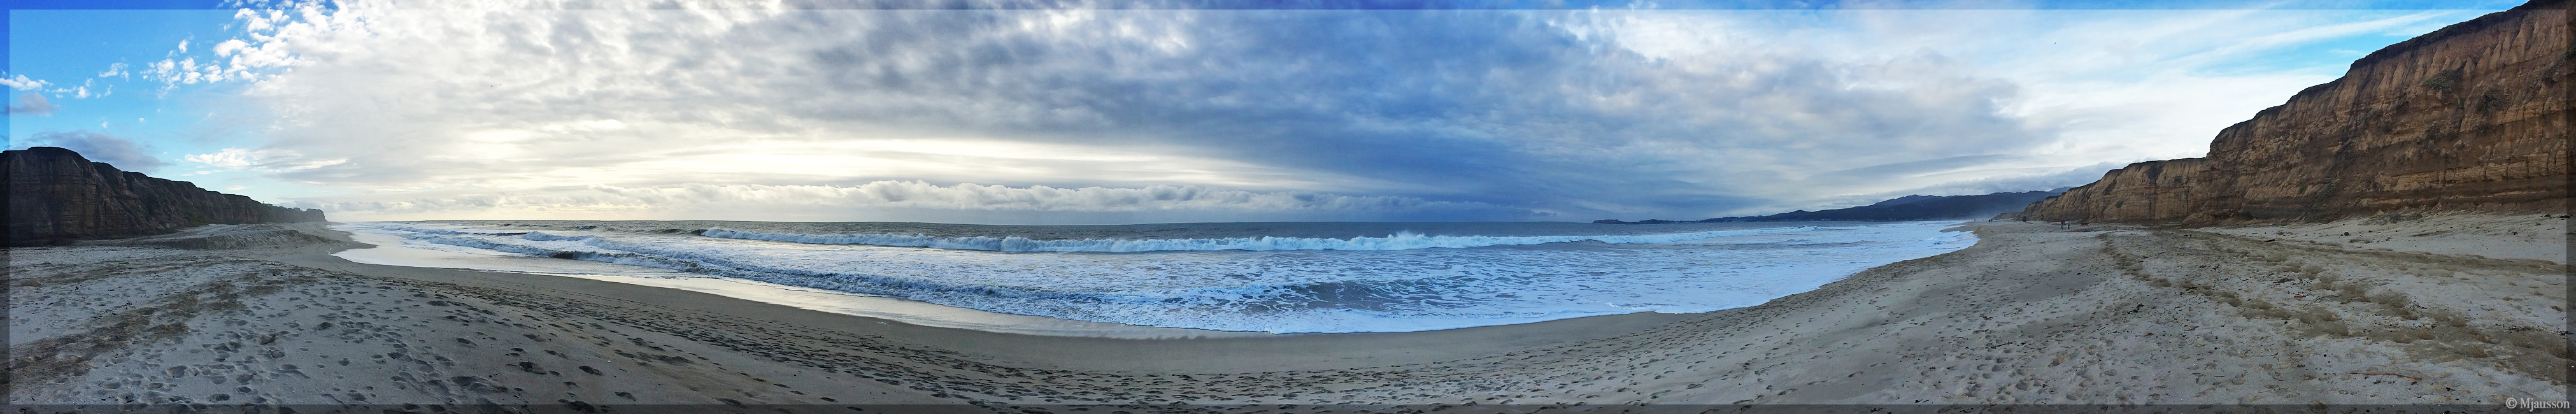 Half Moon Bay Panorama 2